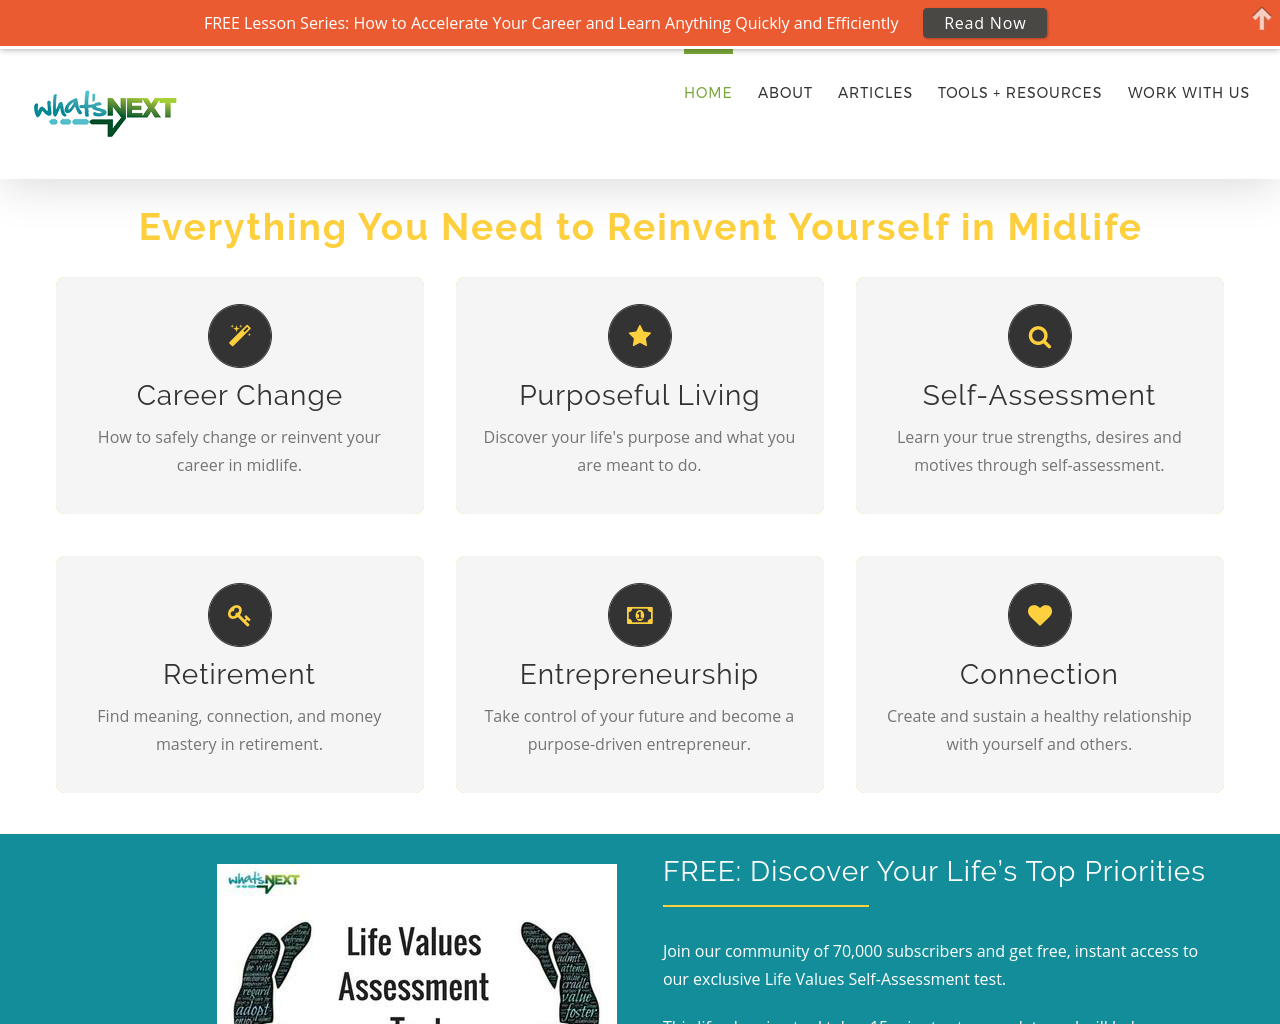 What's-Next-|-Create-the-life-you-want-Advertising-Reviews-Pricing